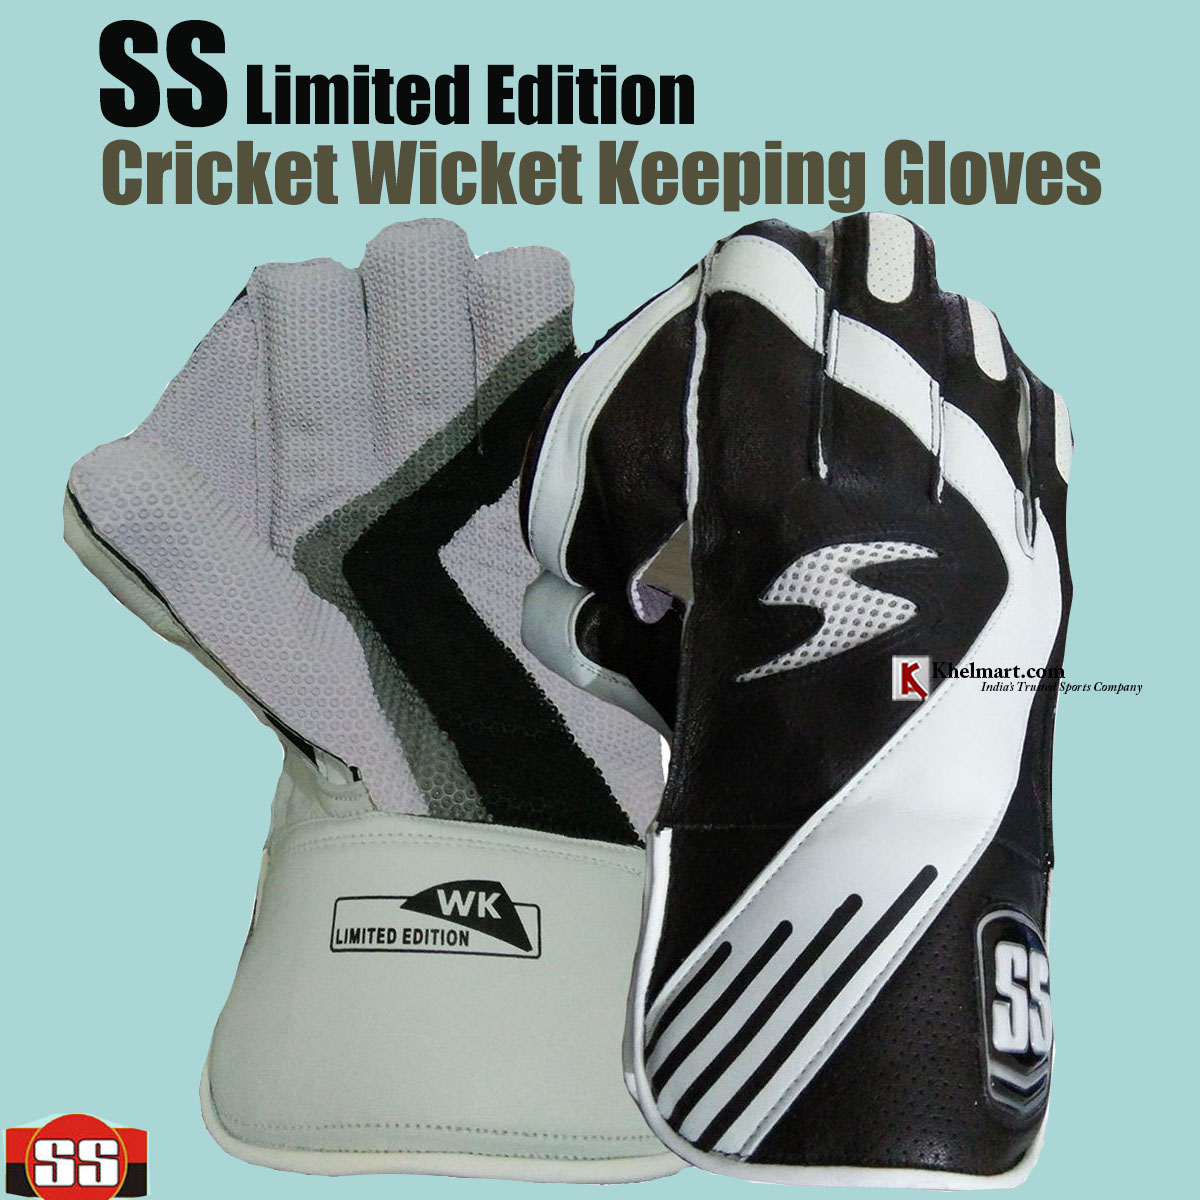 SS_Limited_Edition_Cricket_Wicket_Keeping_Gloves_2.jpg